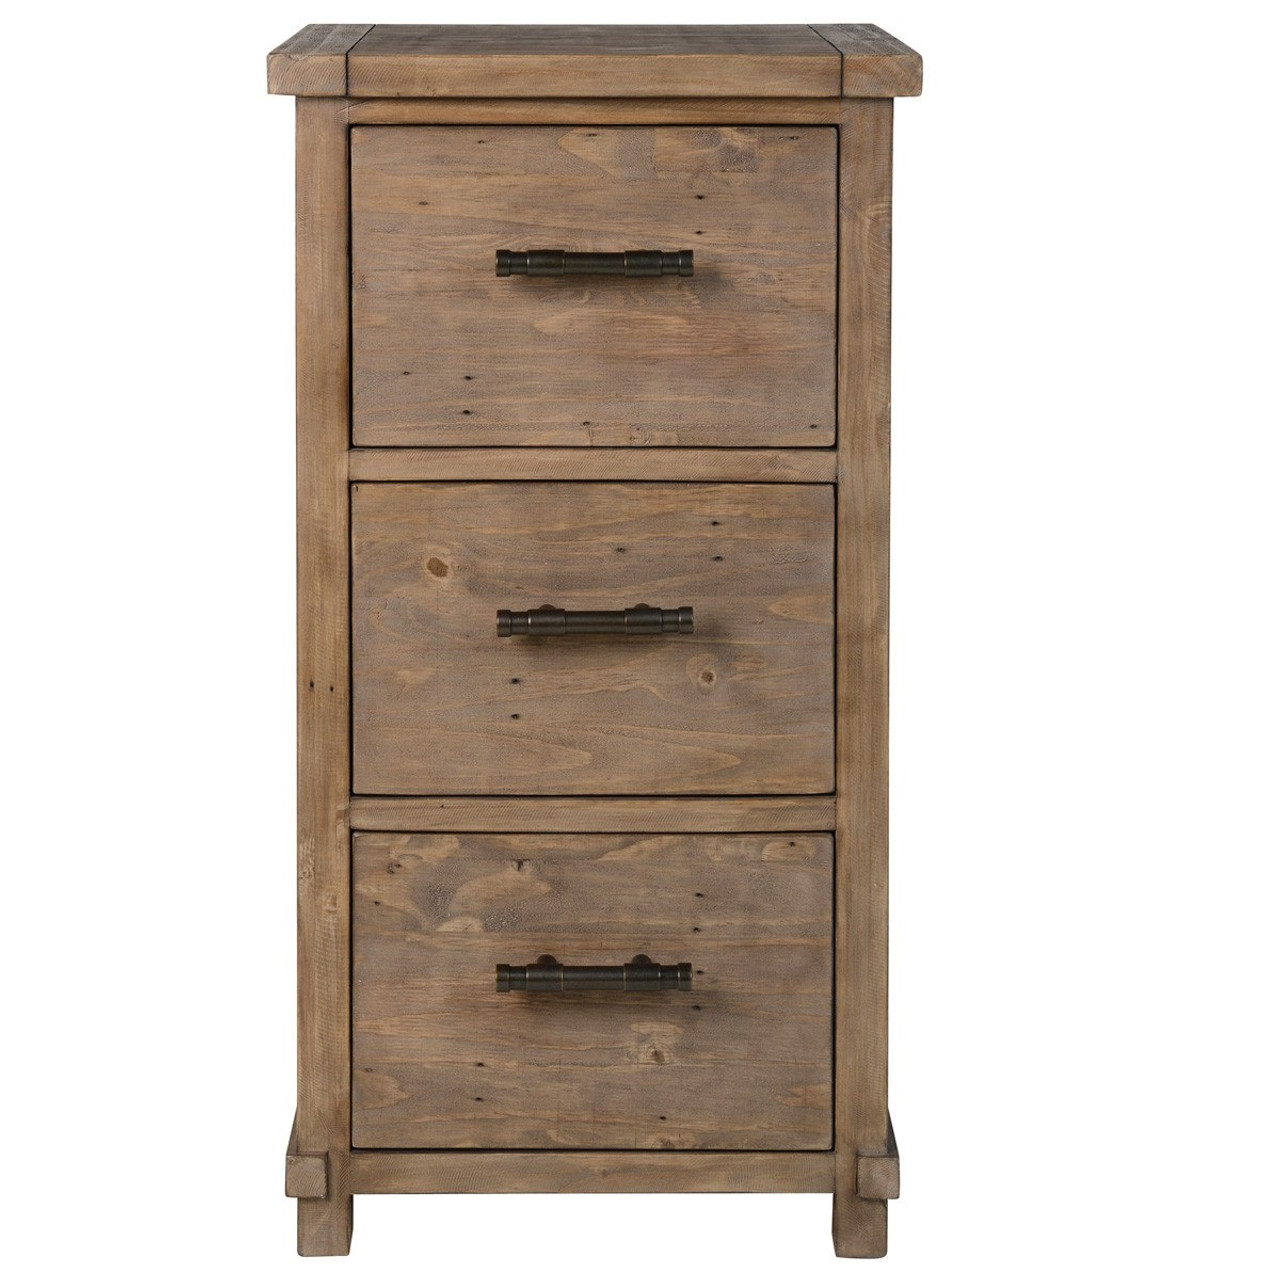 Farmhouse Reclaimed Wood 3 Drawers Filing Cabinet